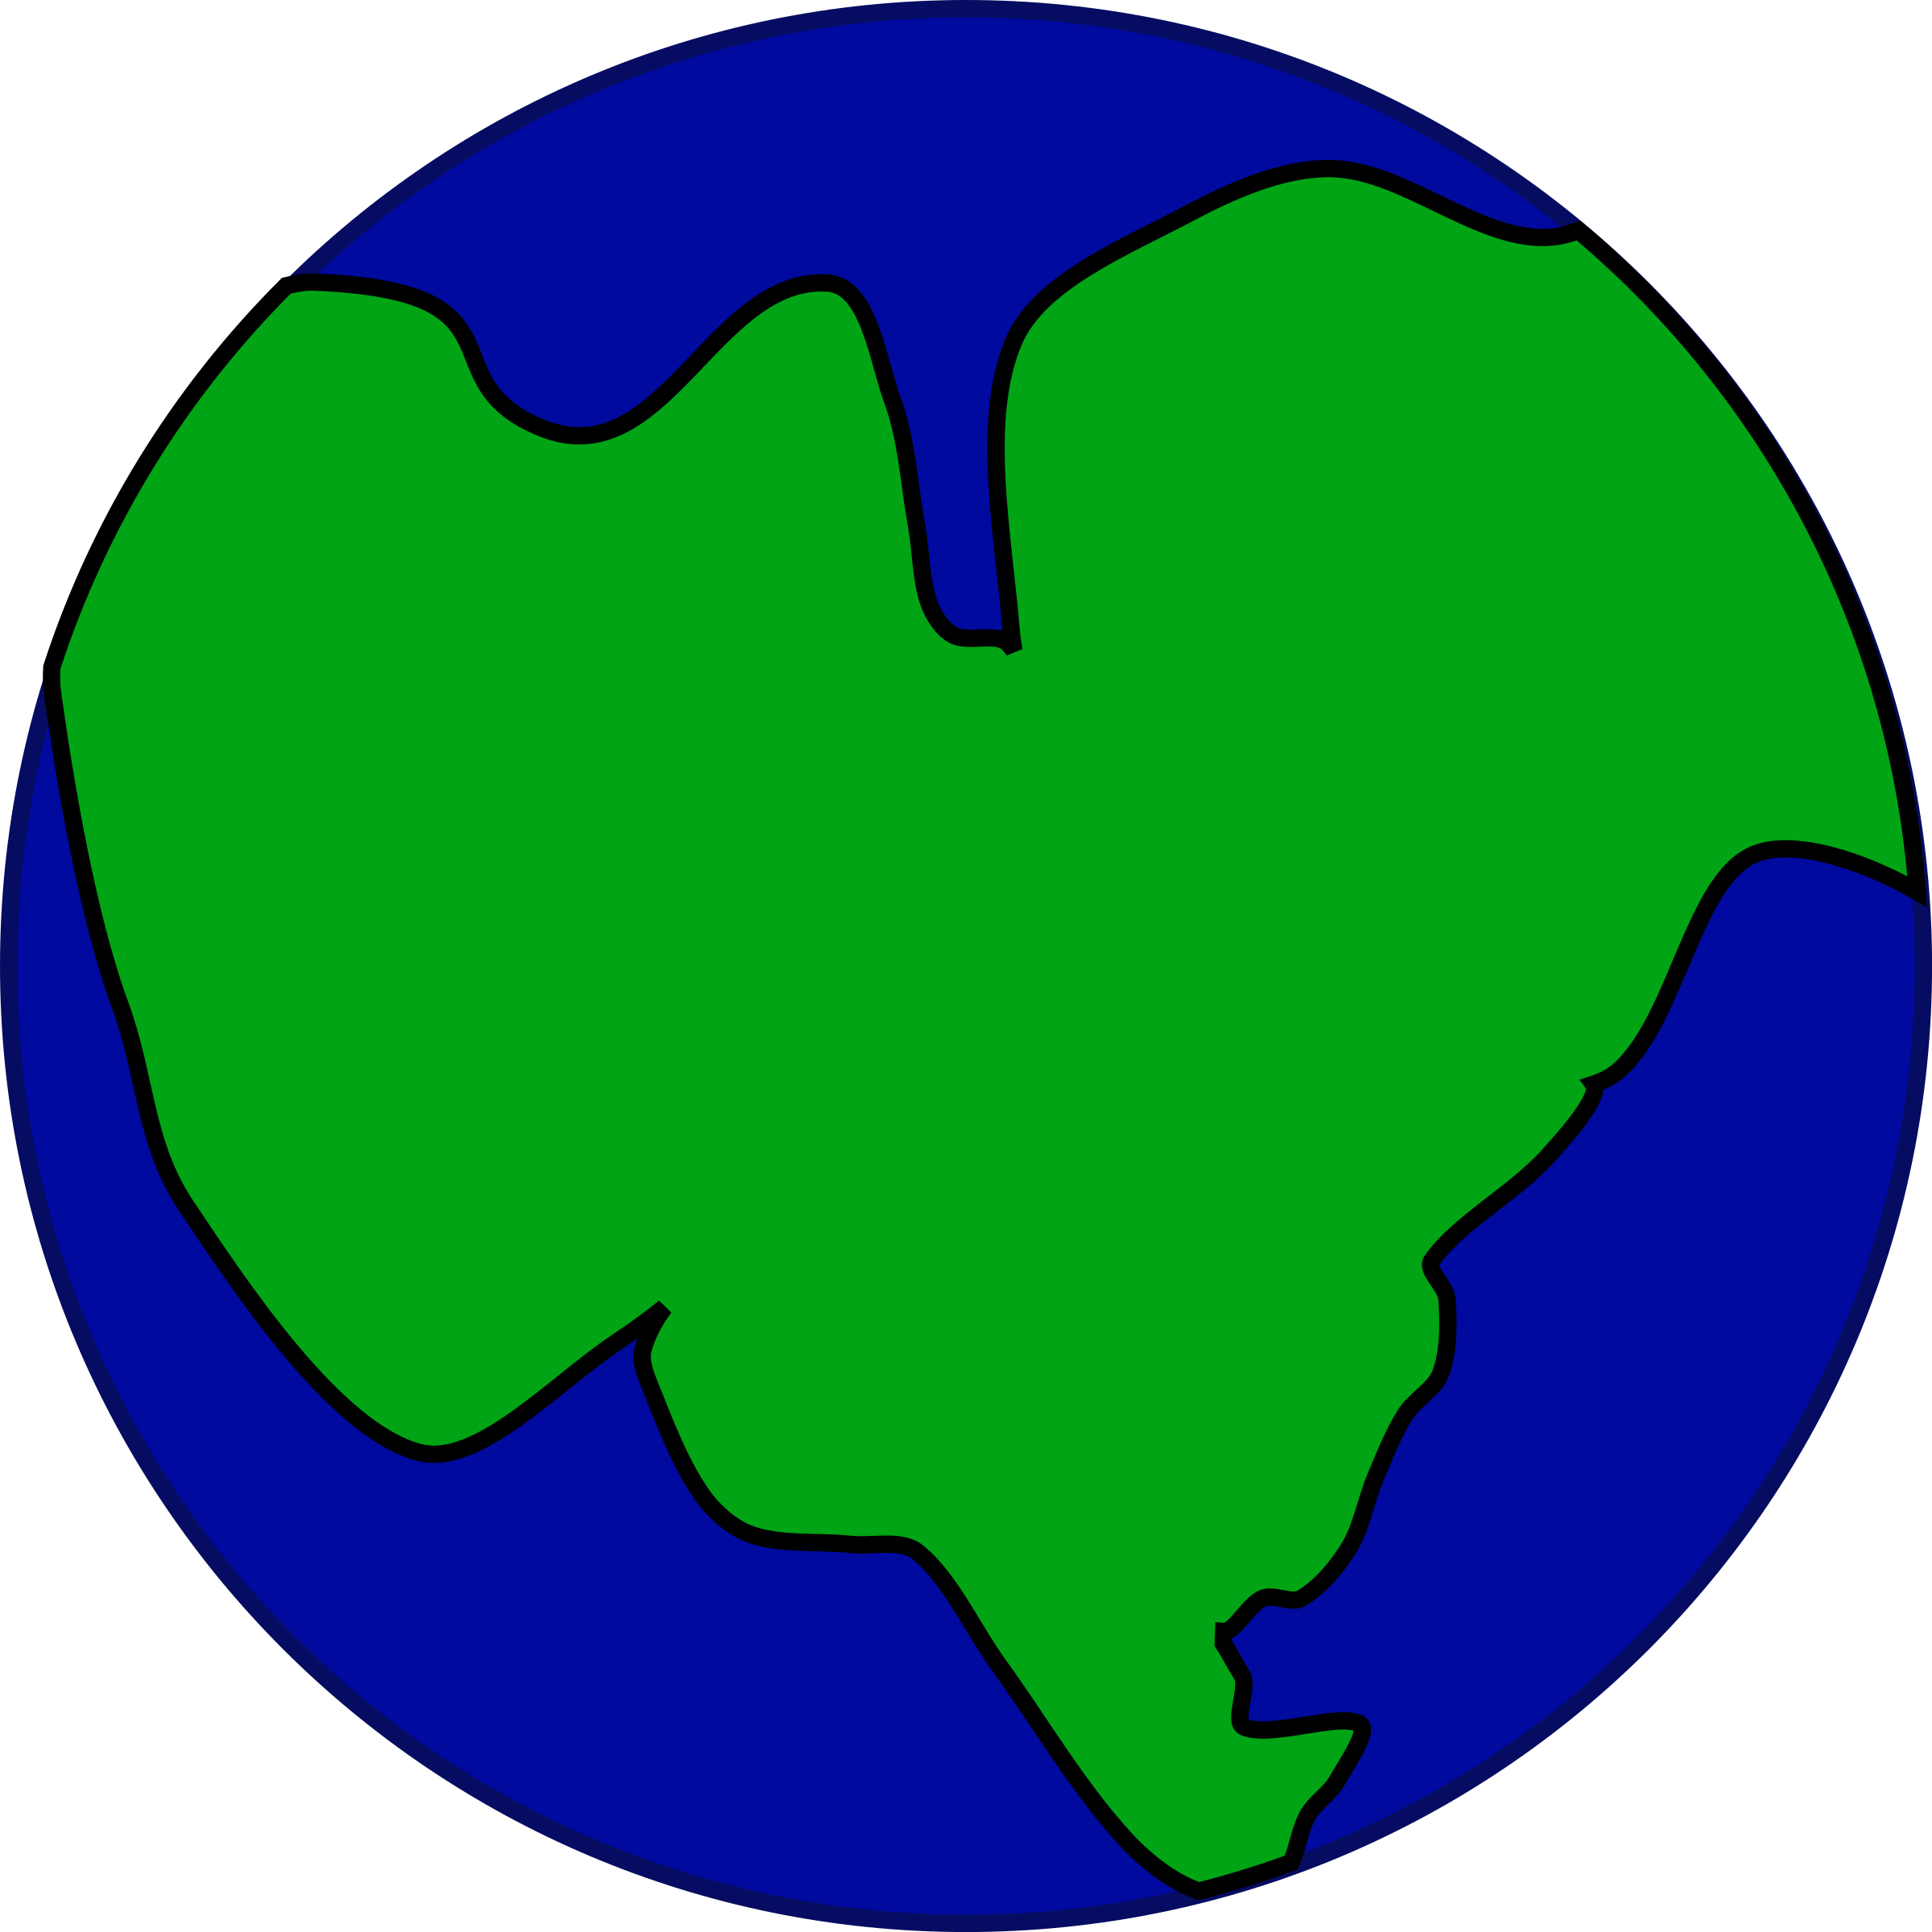 Continent transparent pencil and. Clipart earth music